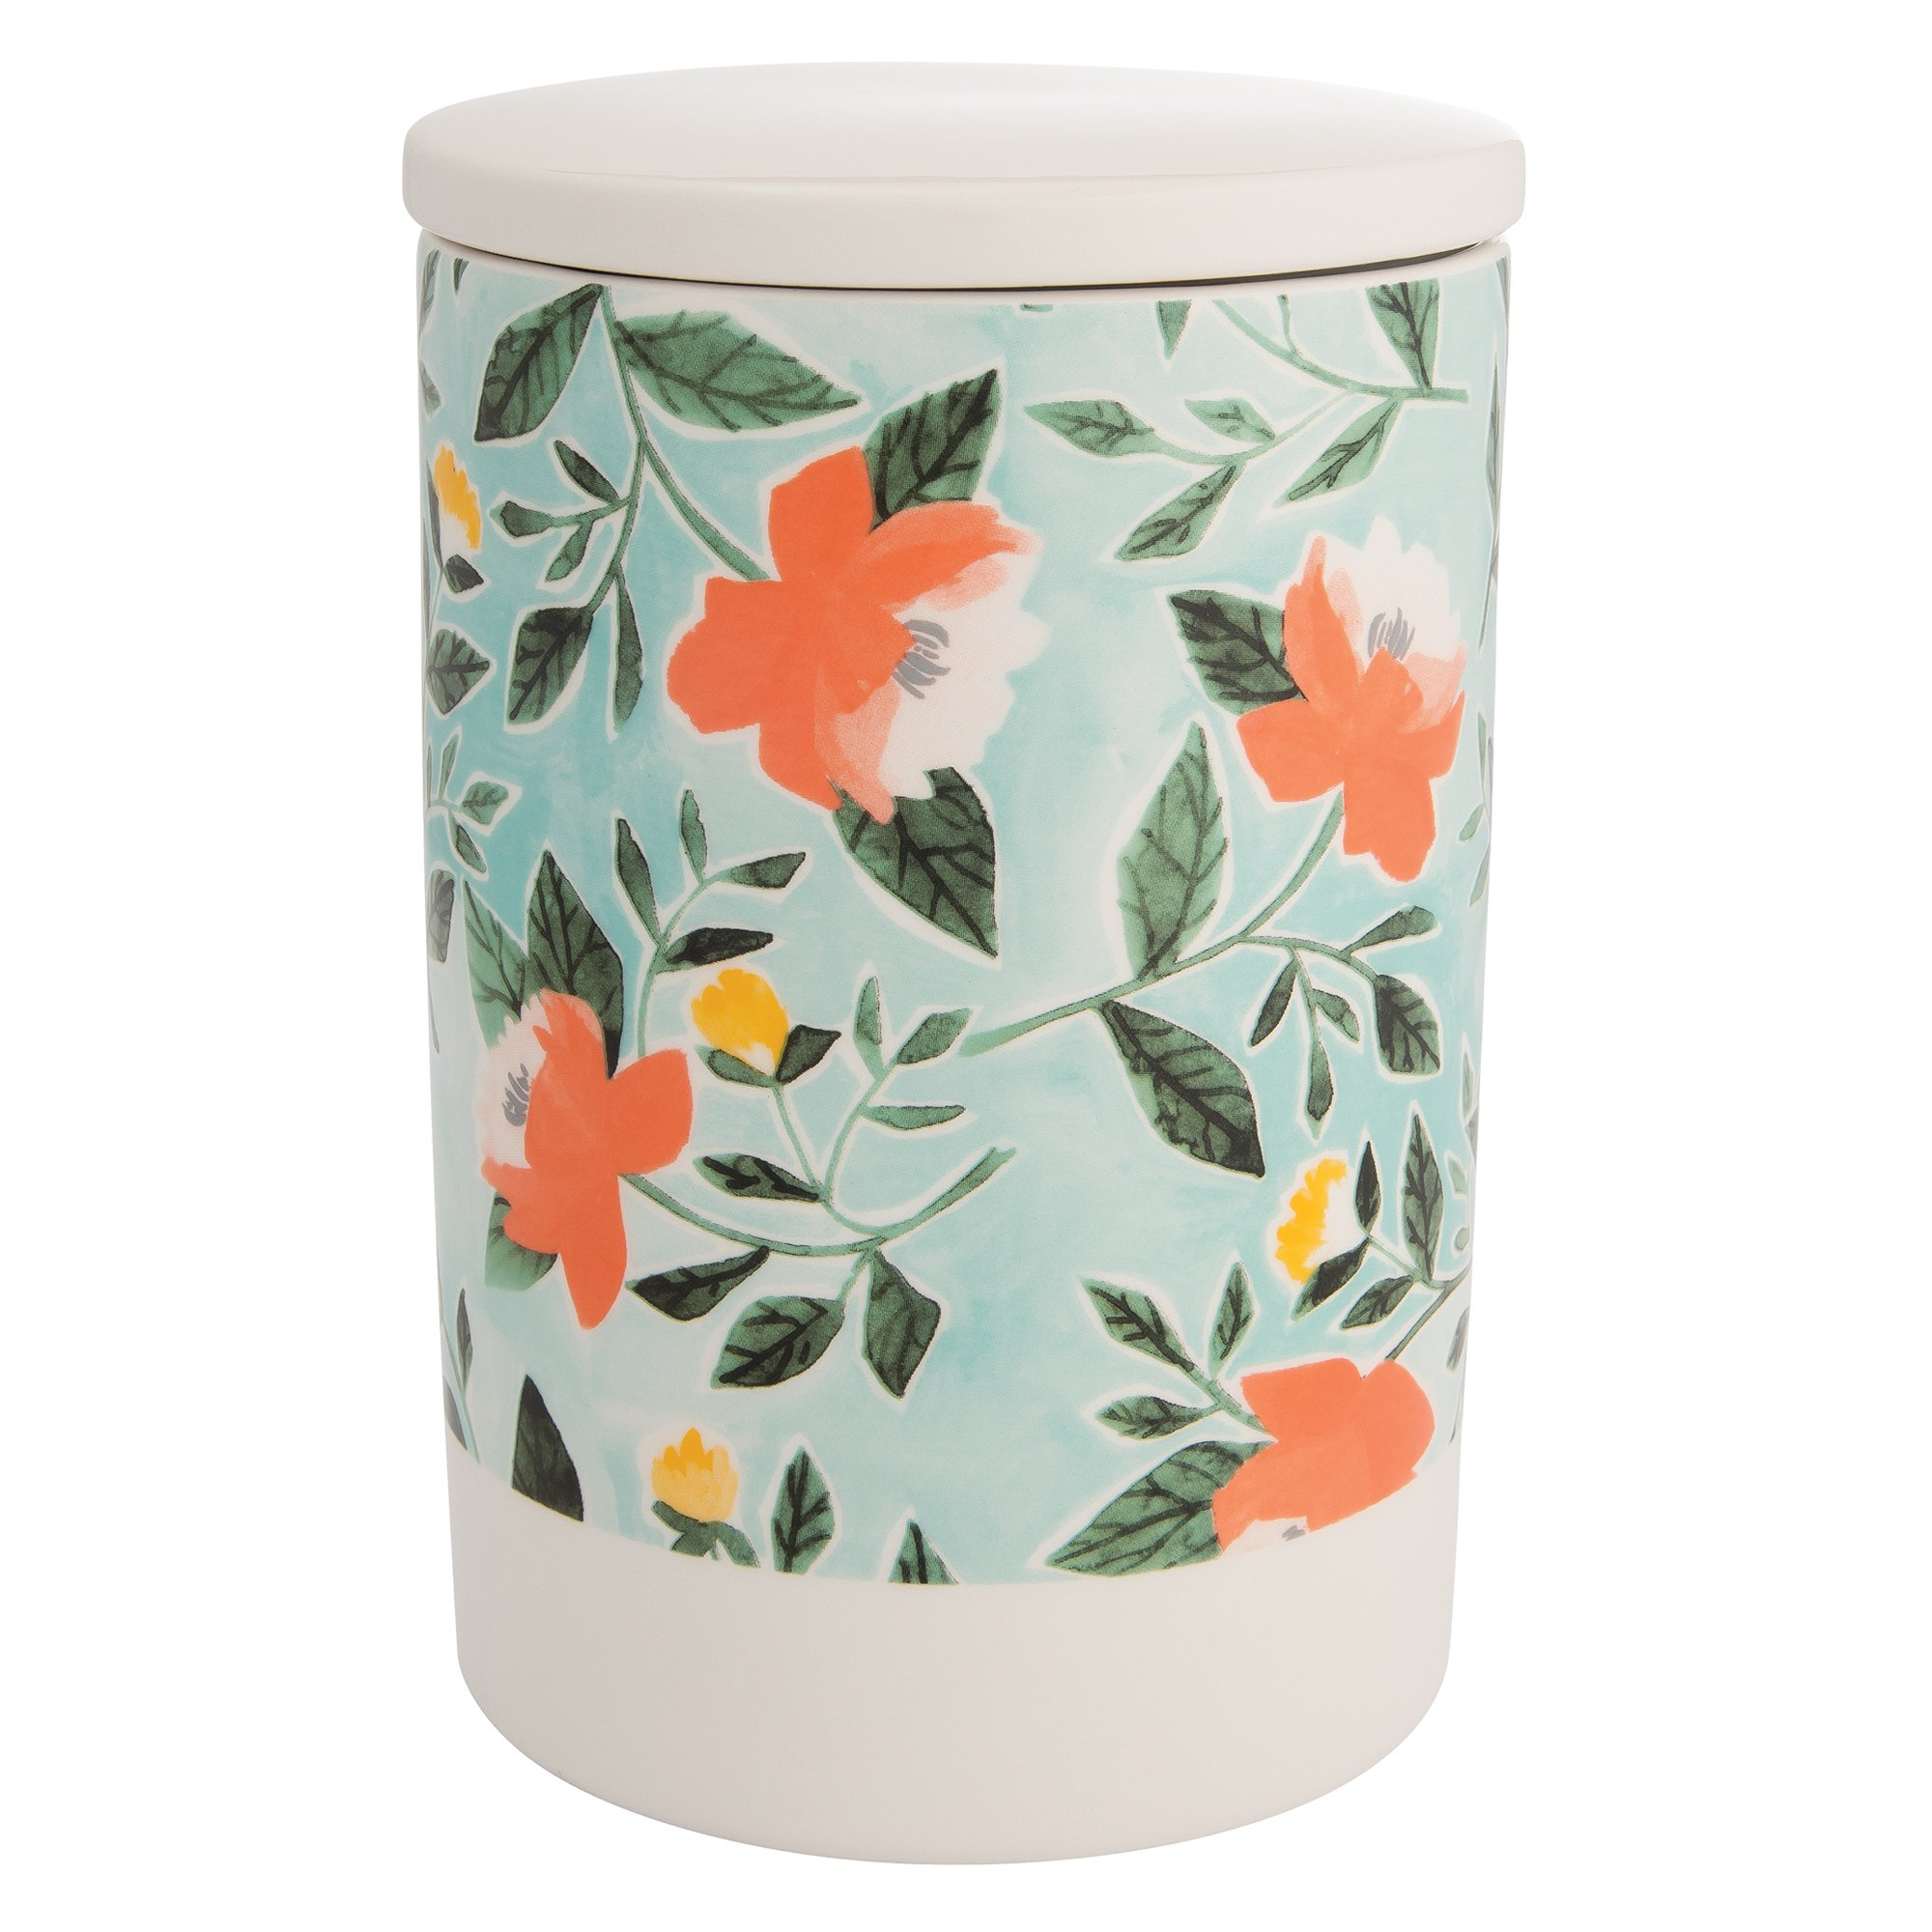 Vandor 35047 1Canoe2 Peony + Mint Ceramic Kitchen Storage Canister with Lid, 8.2 x 5.5 Inches